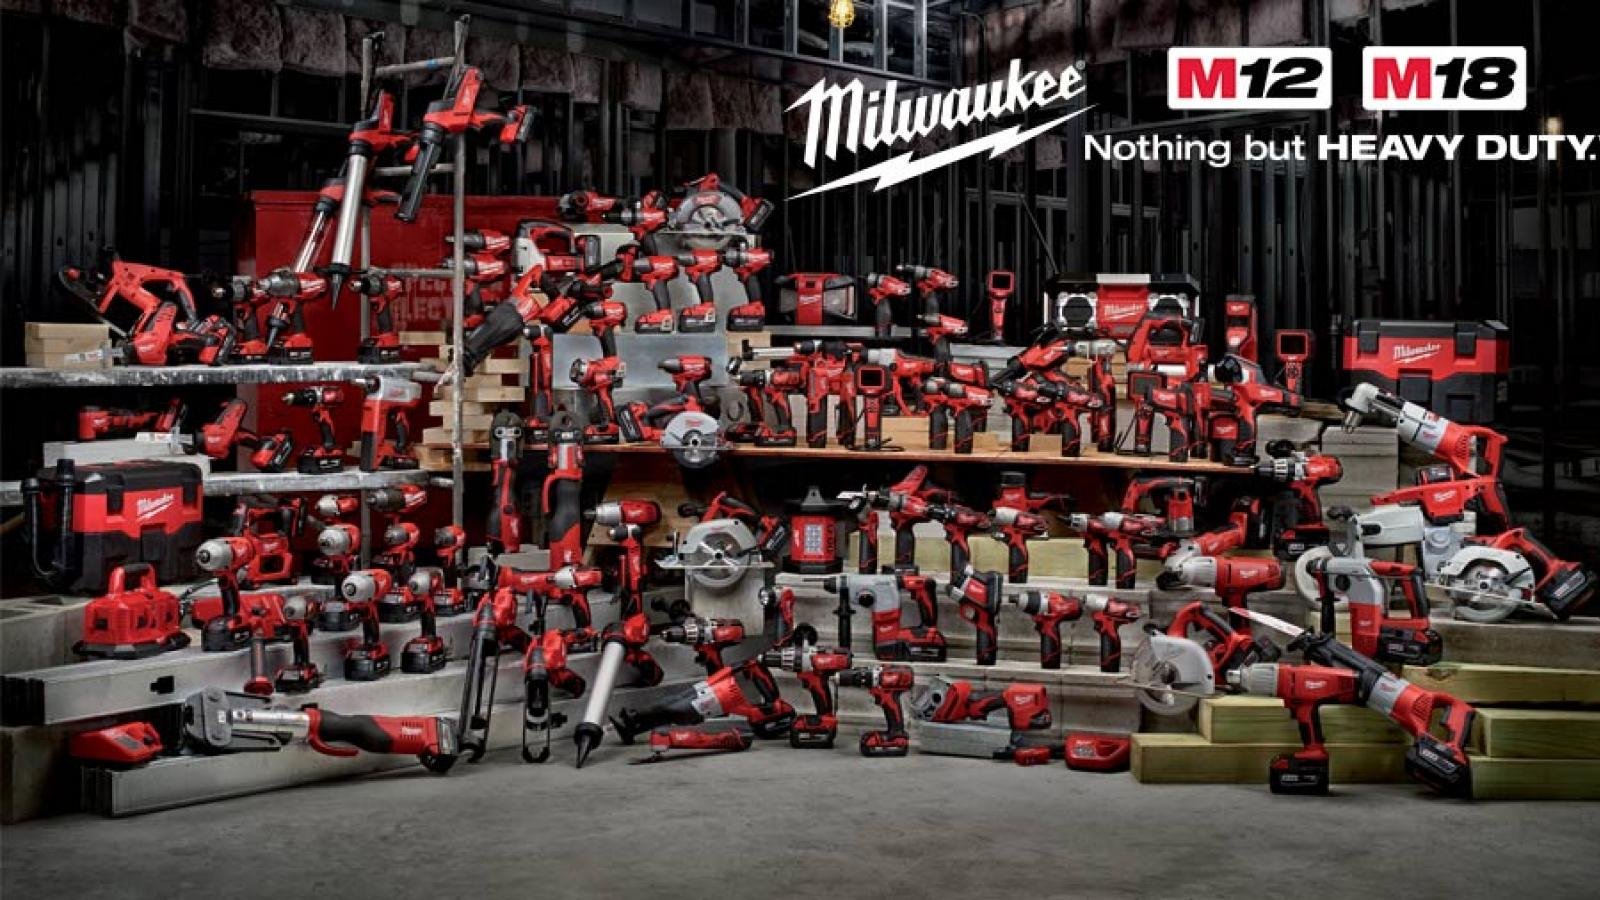 promotion pack nrj milwaukee batterie M12 offerte